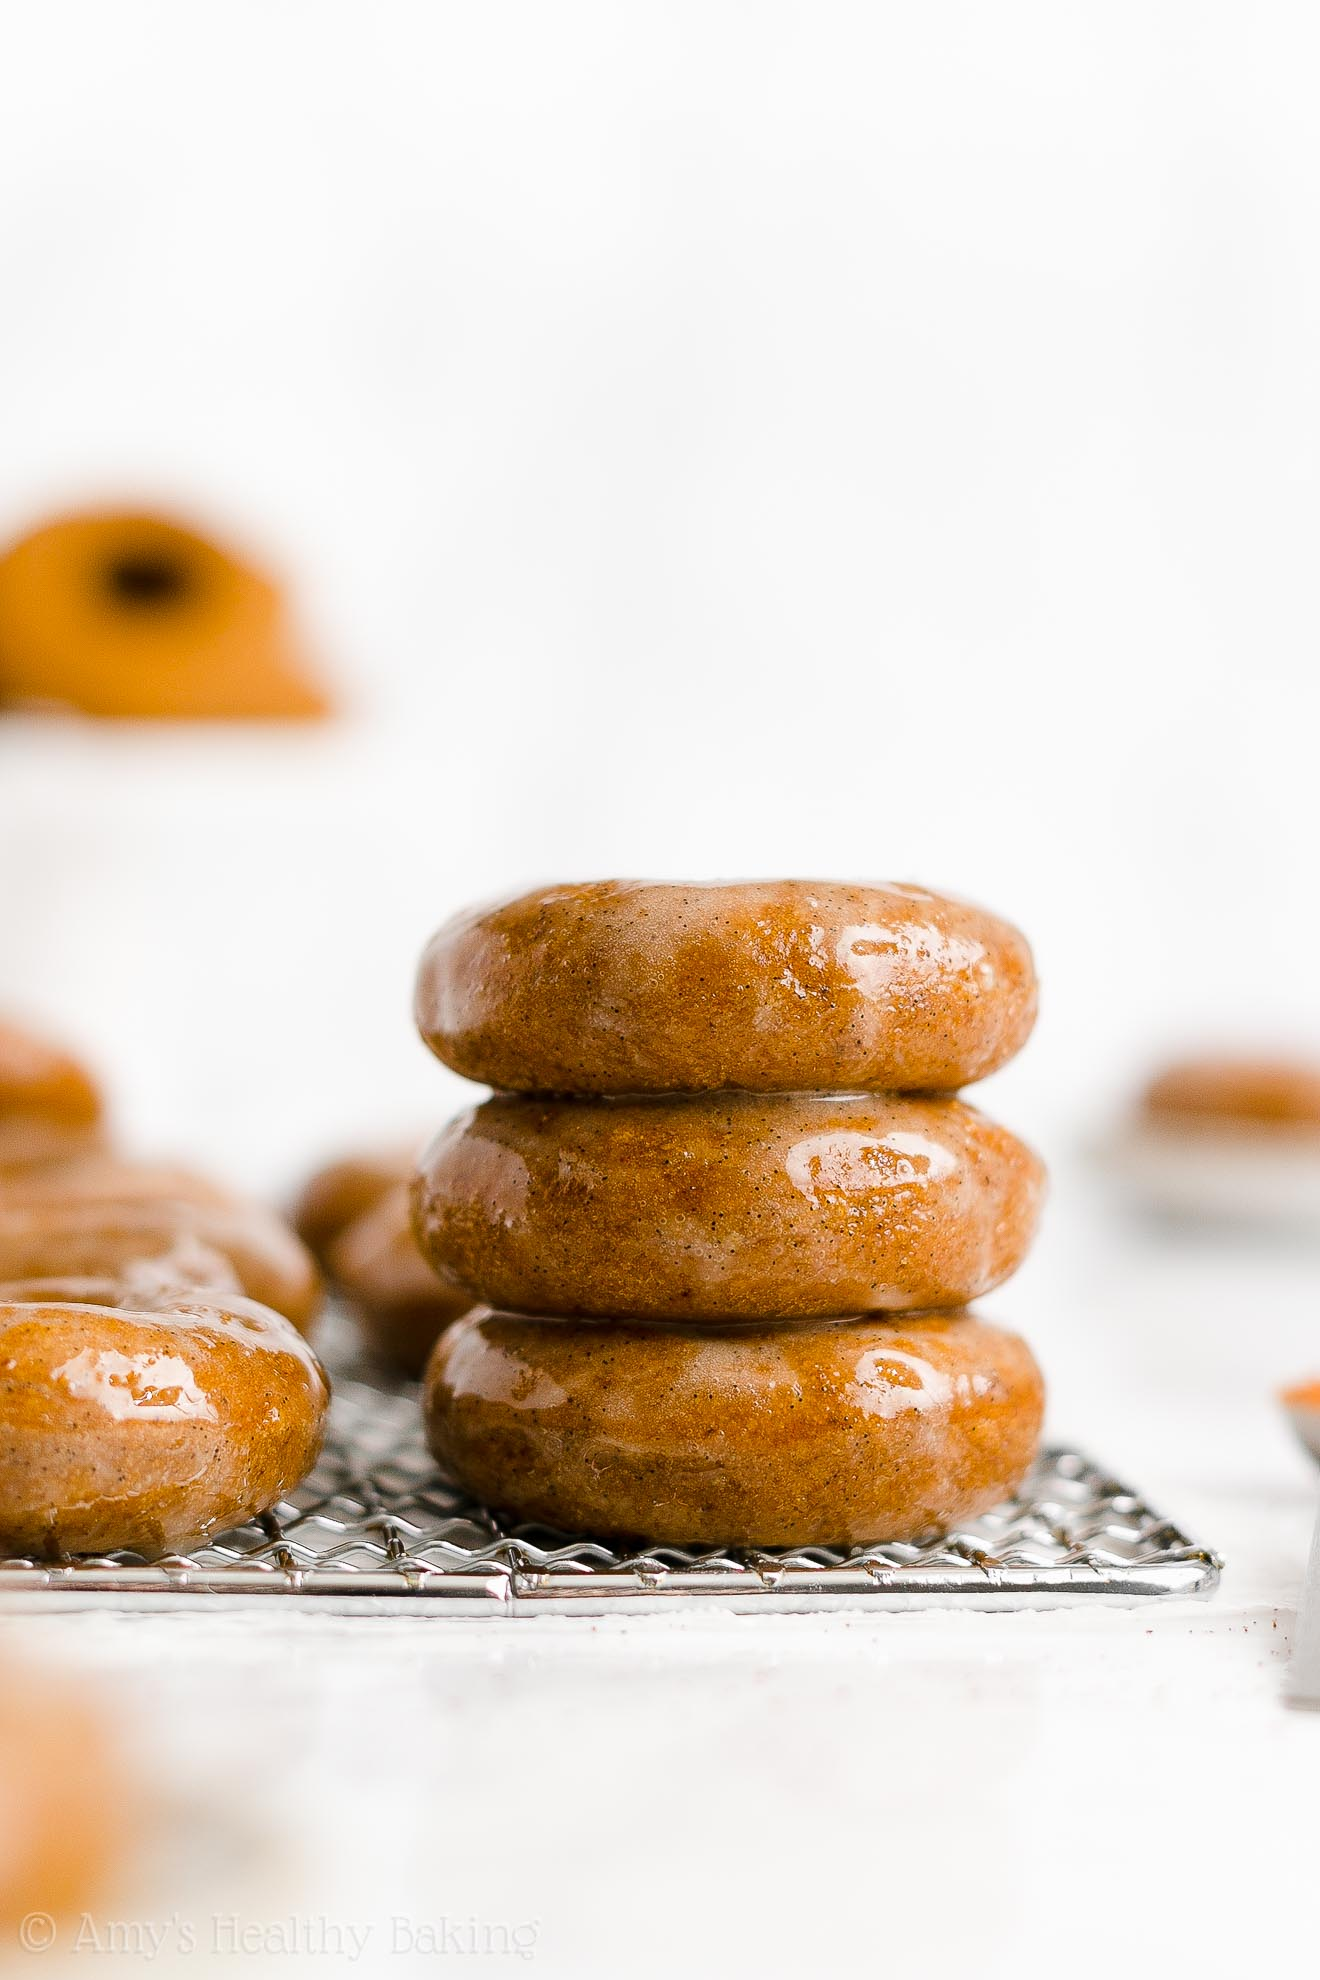 BEST EVER Easy Healthy No Sugar Gluten Free Vegan Baked Pumpkin Donuts